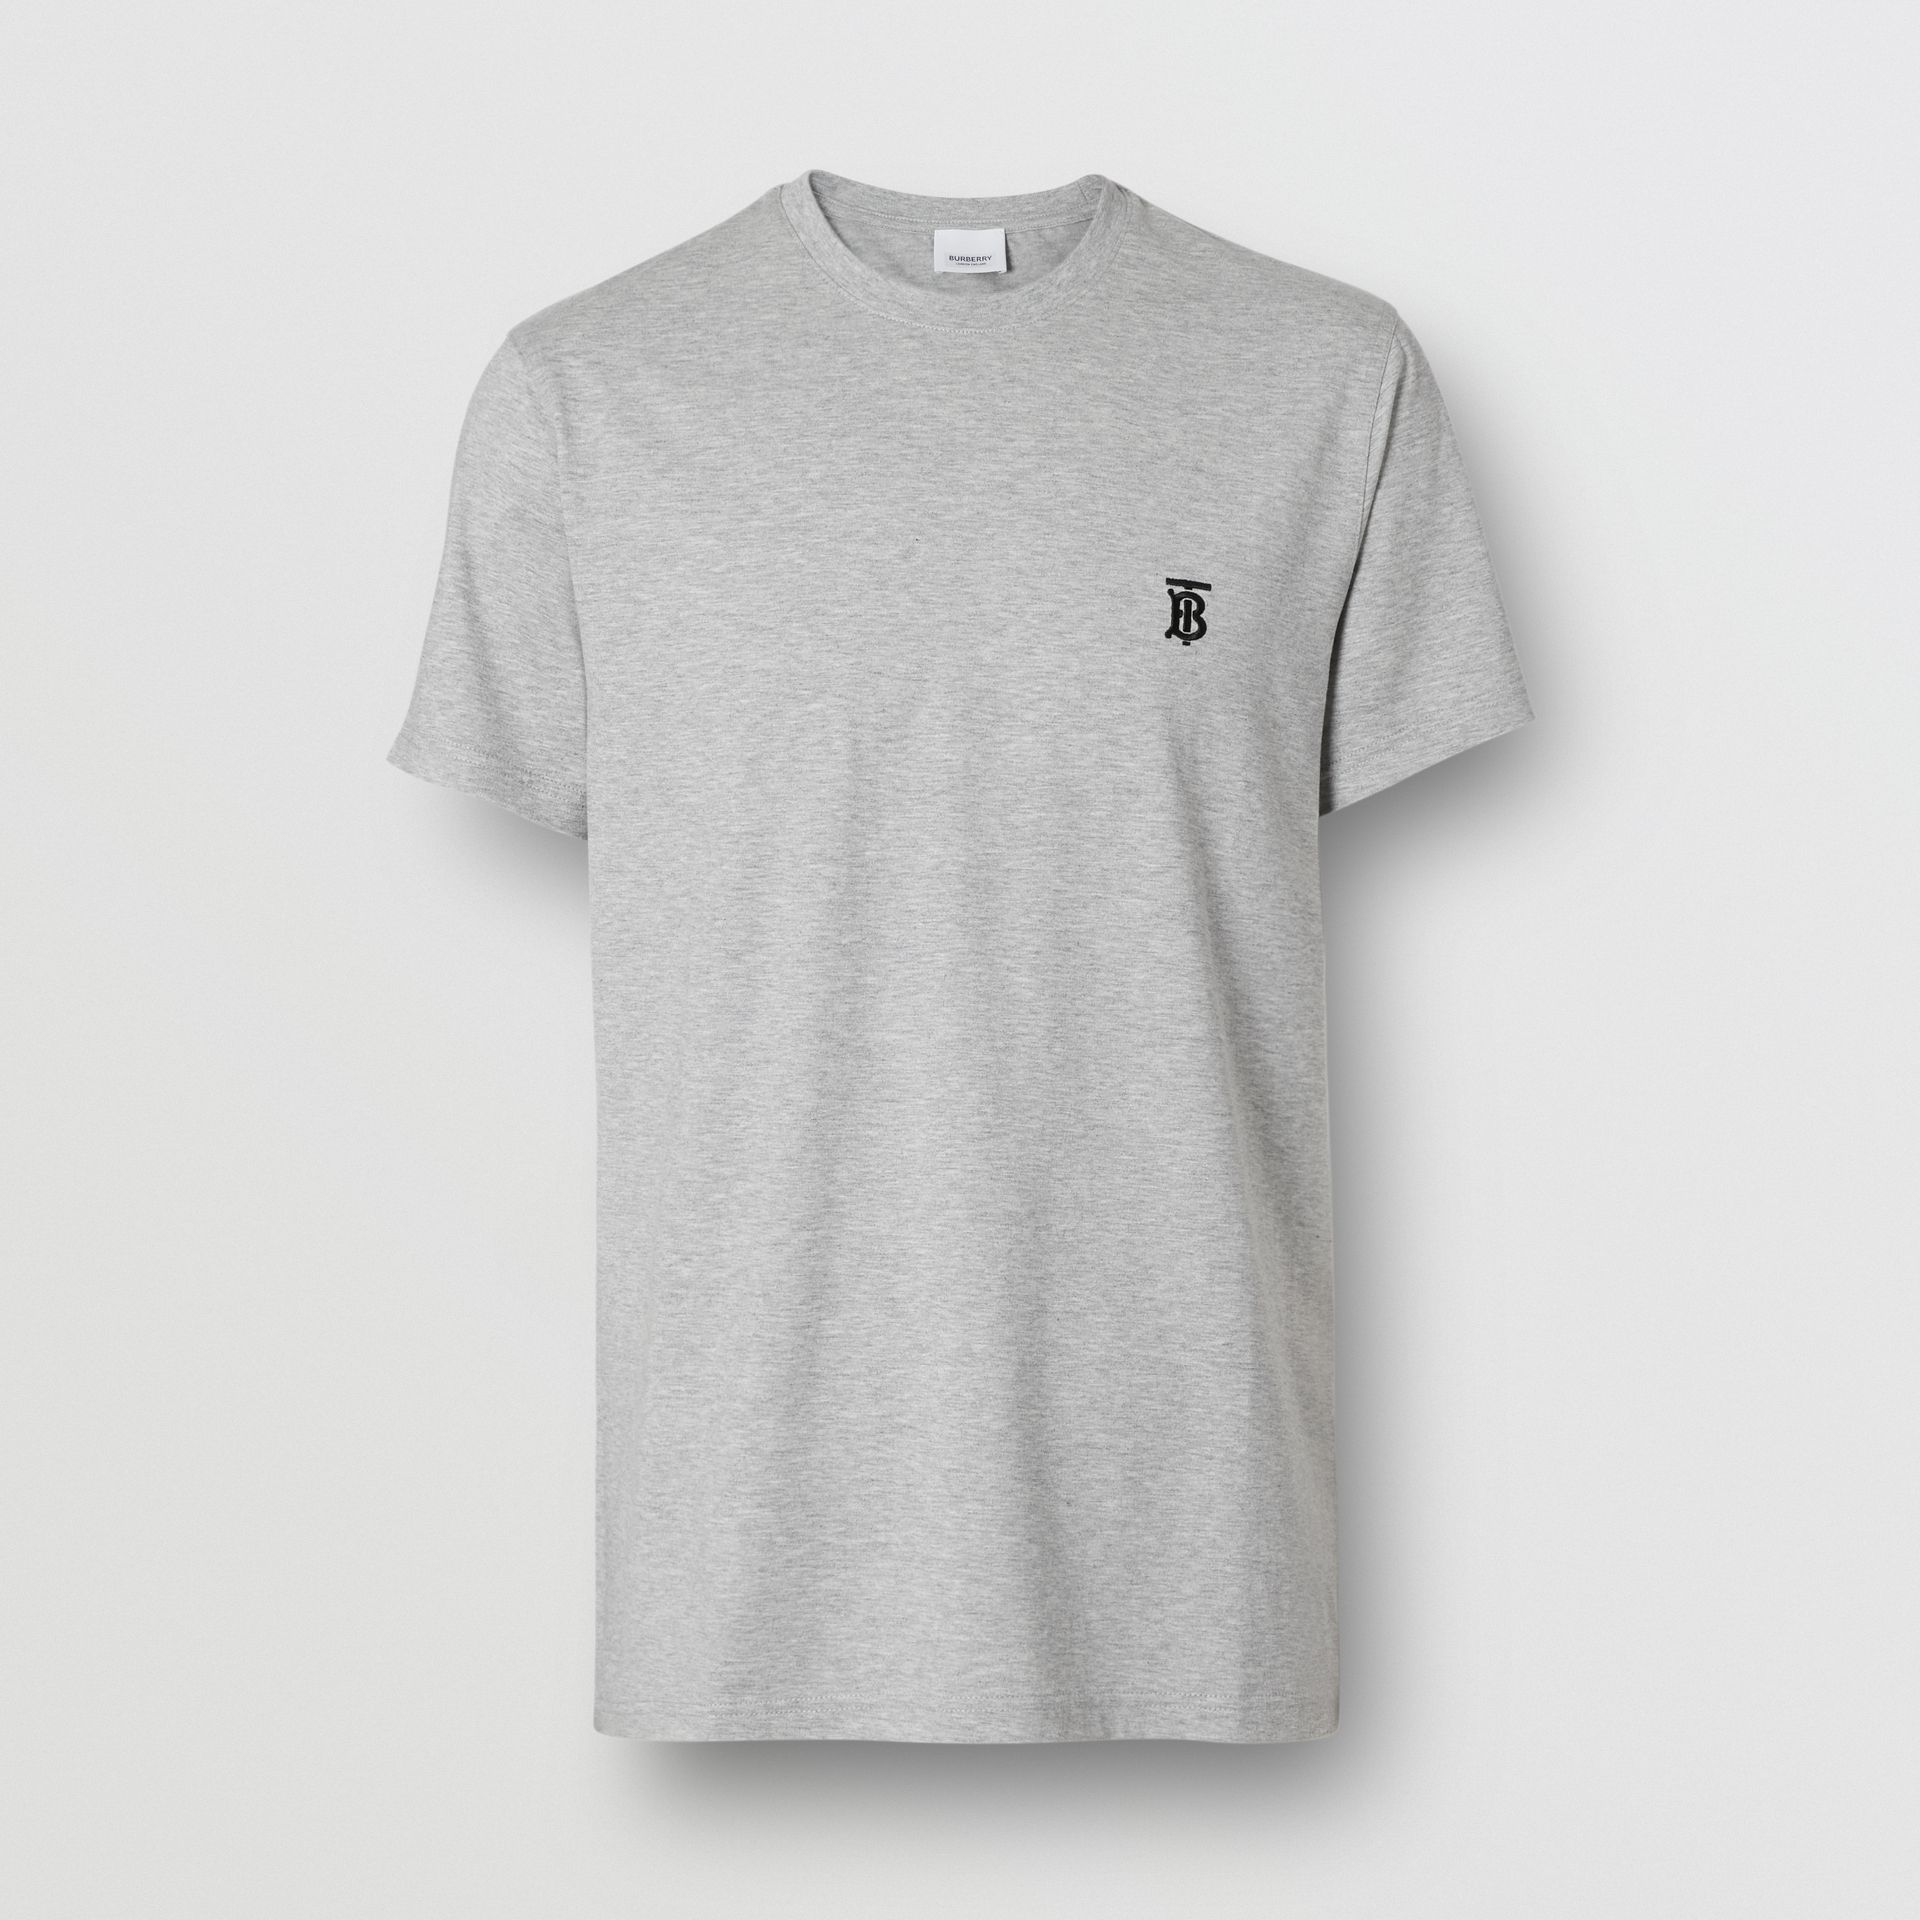 Monogram Motif Cotton T-shirt in Pale Grey Melange - Men | Burberry - gallery image 3